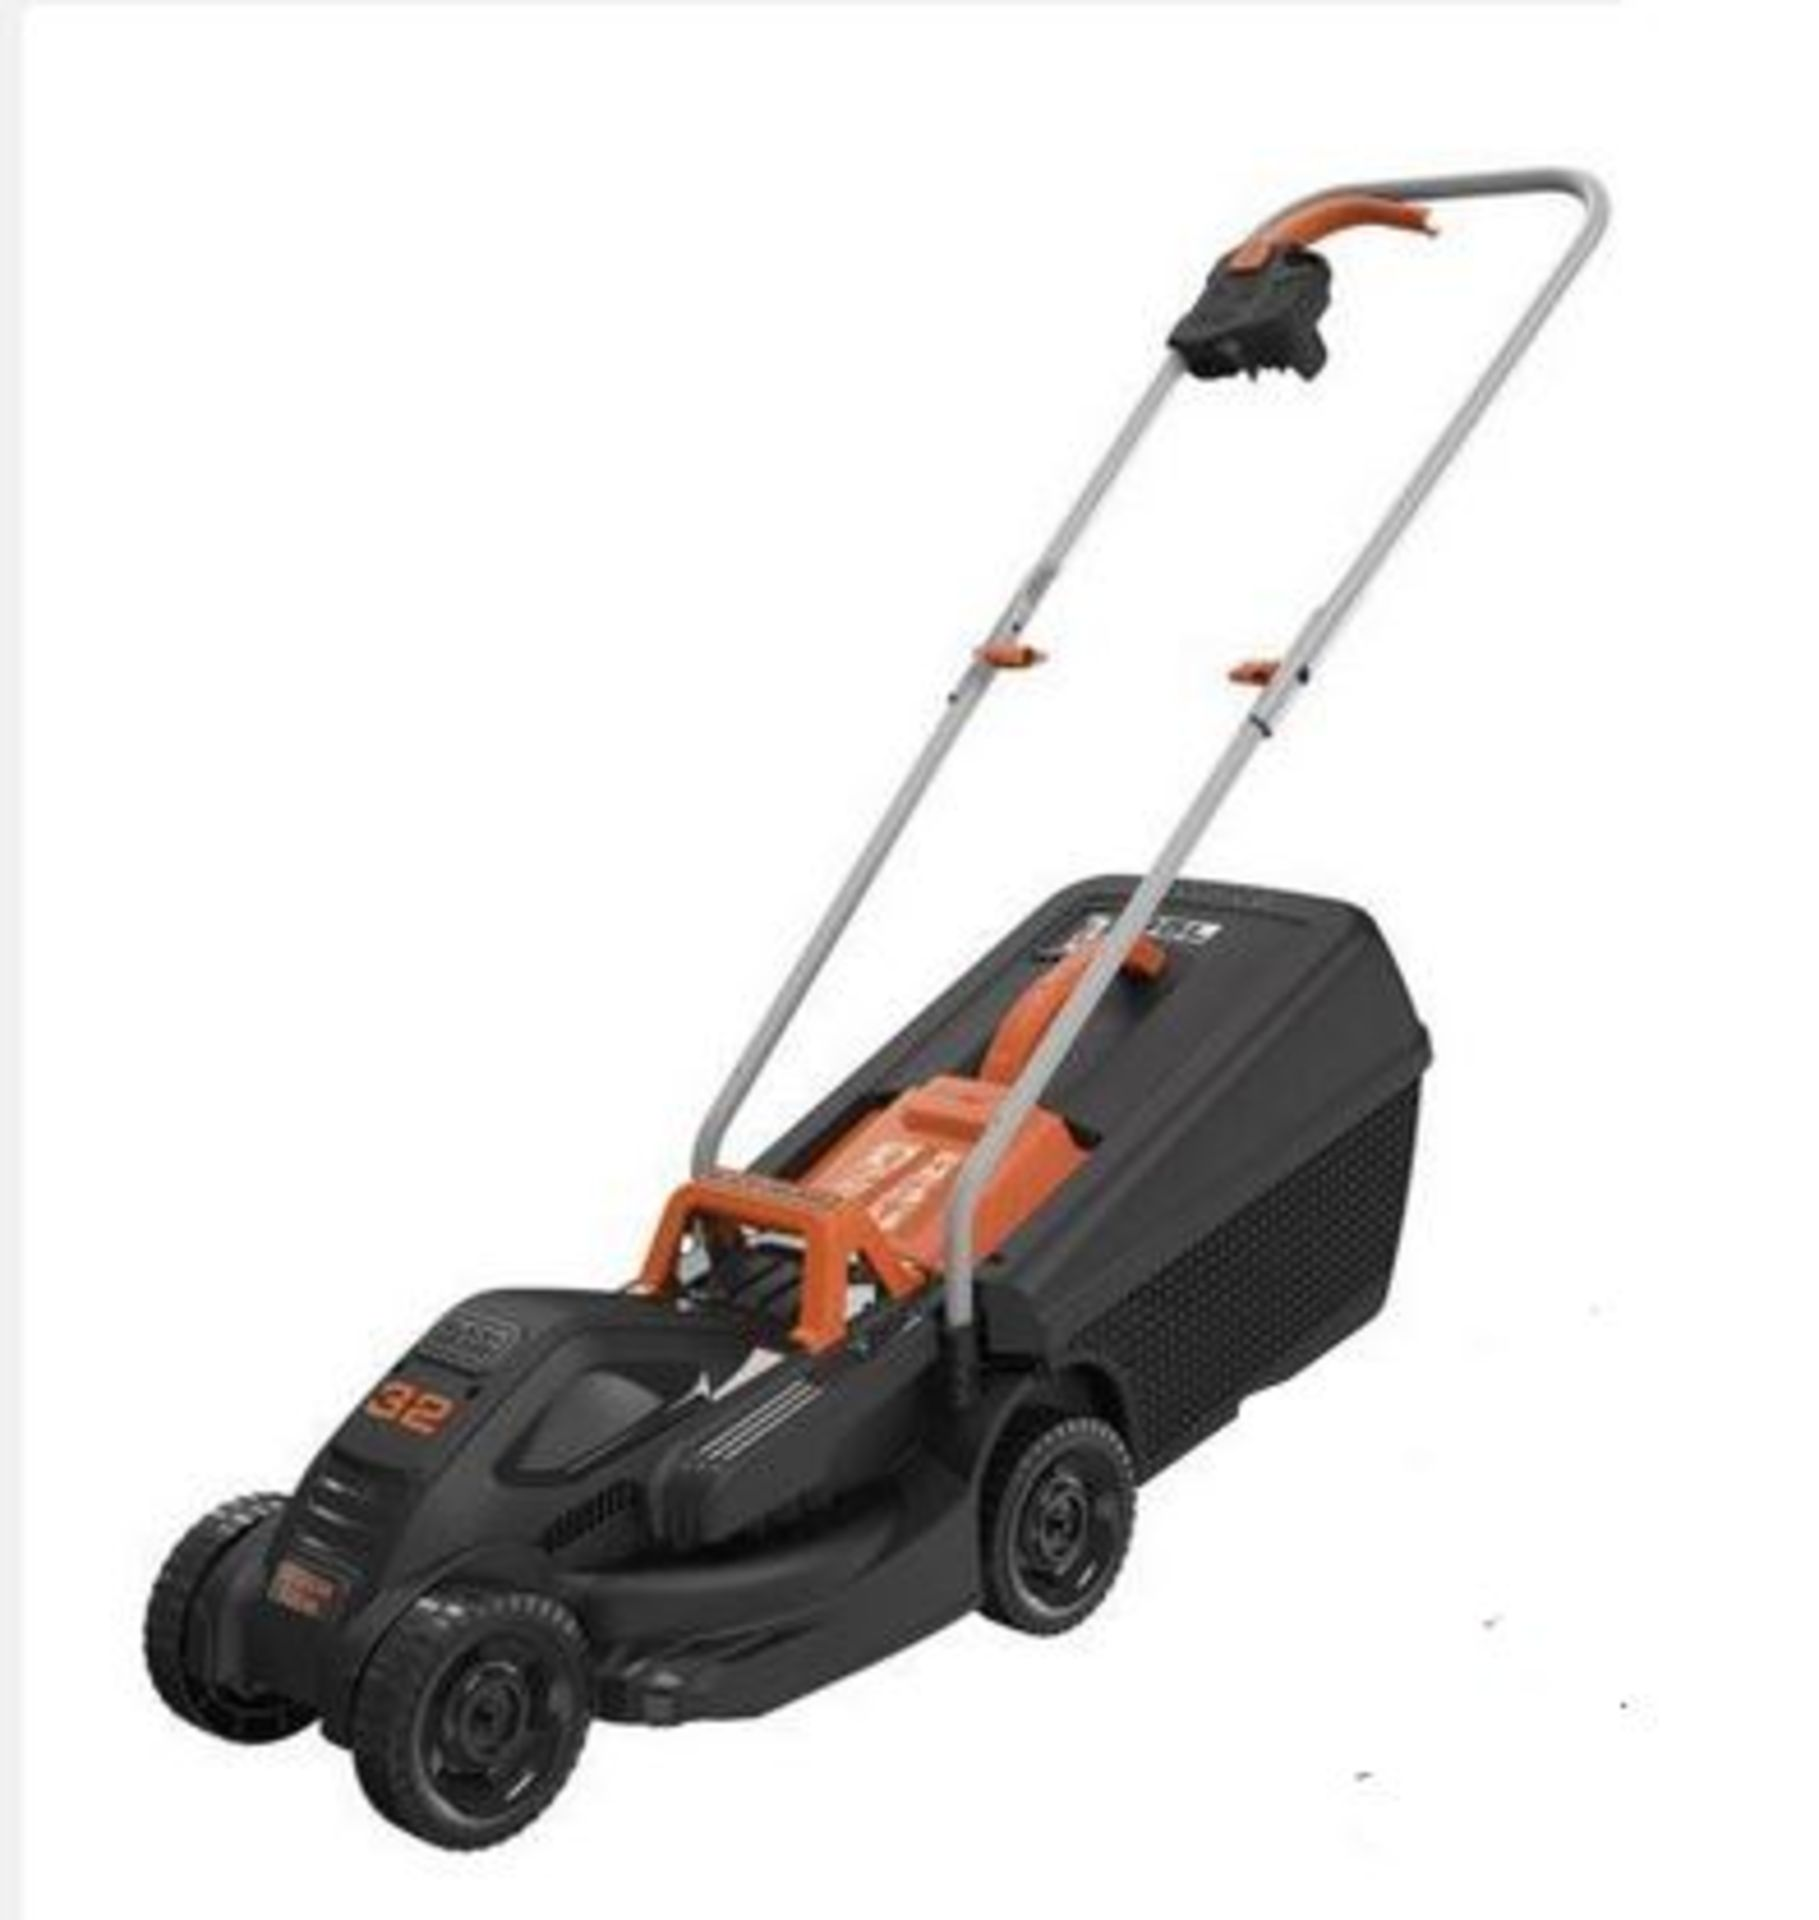 (P5) 1x Black & Decker 32cm 1000W Corded Lawn Mower. Contents Appear Clean, Unused. (Please Note – - Image 2 of 5